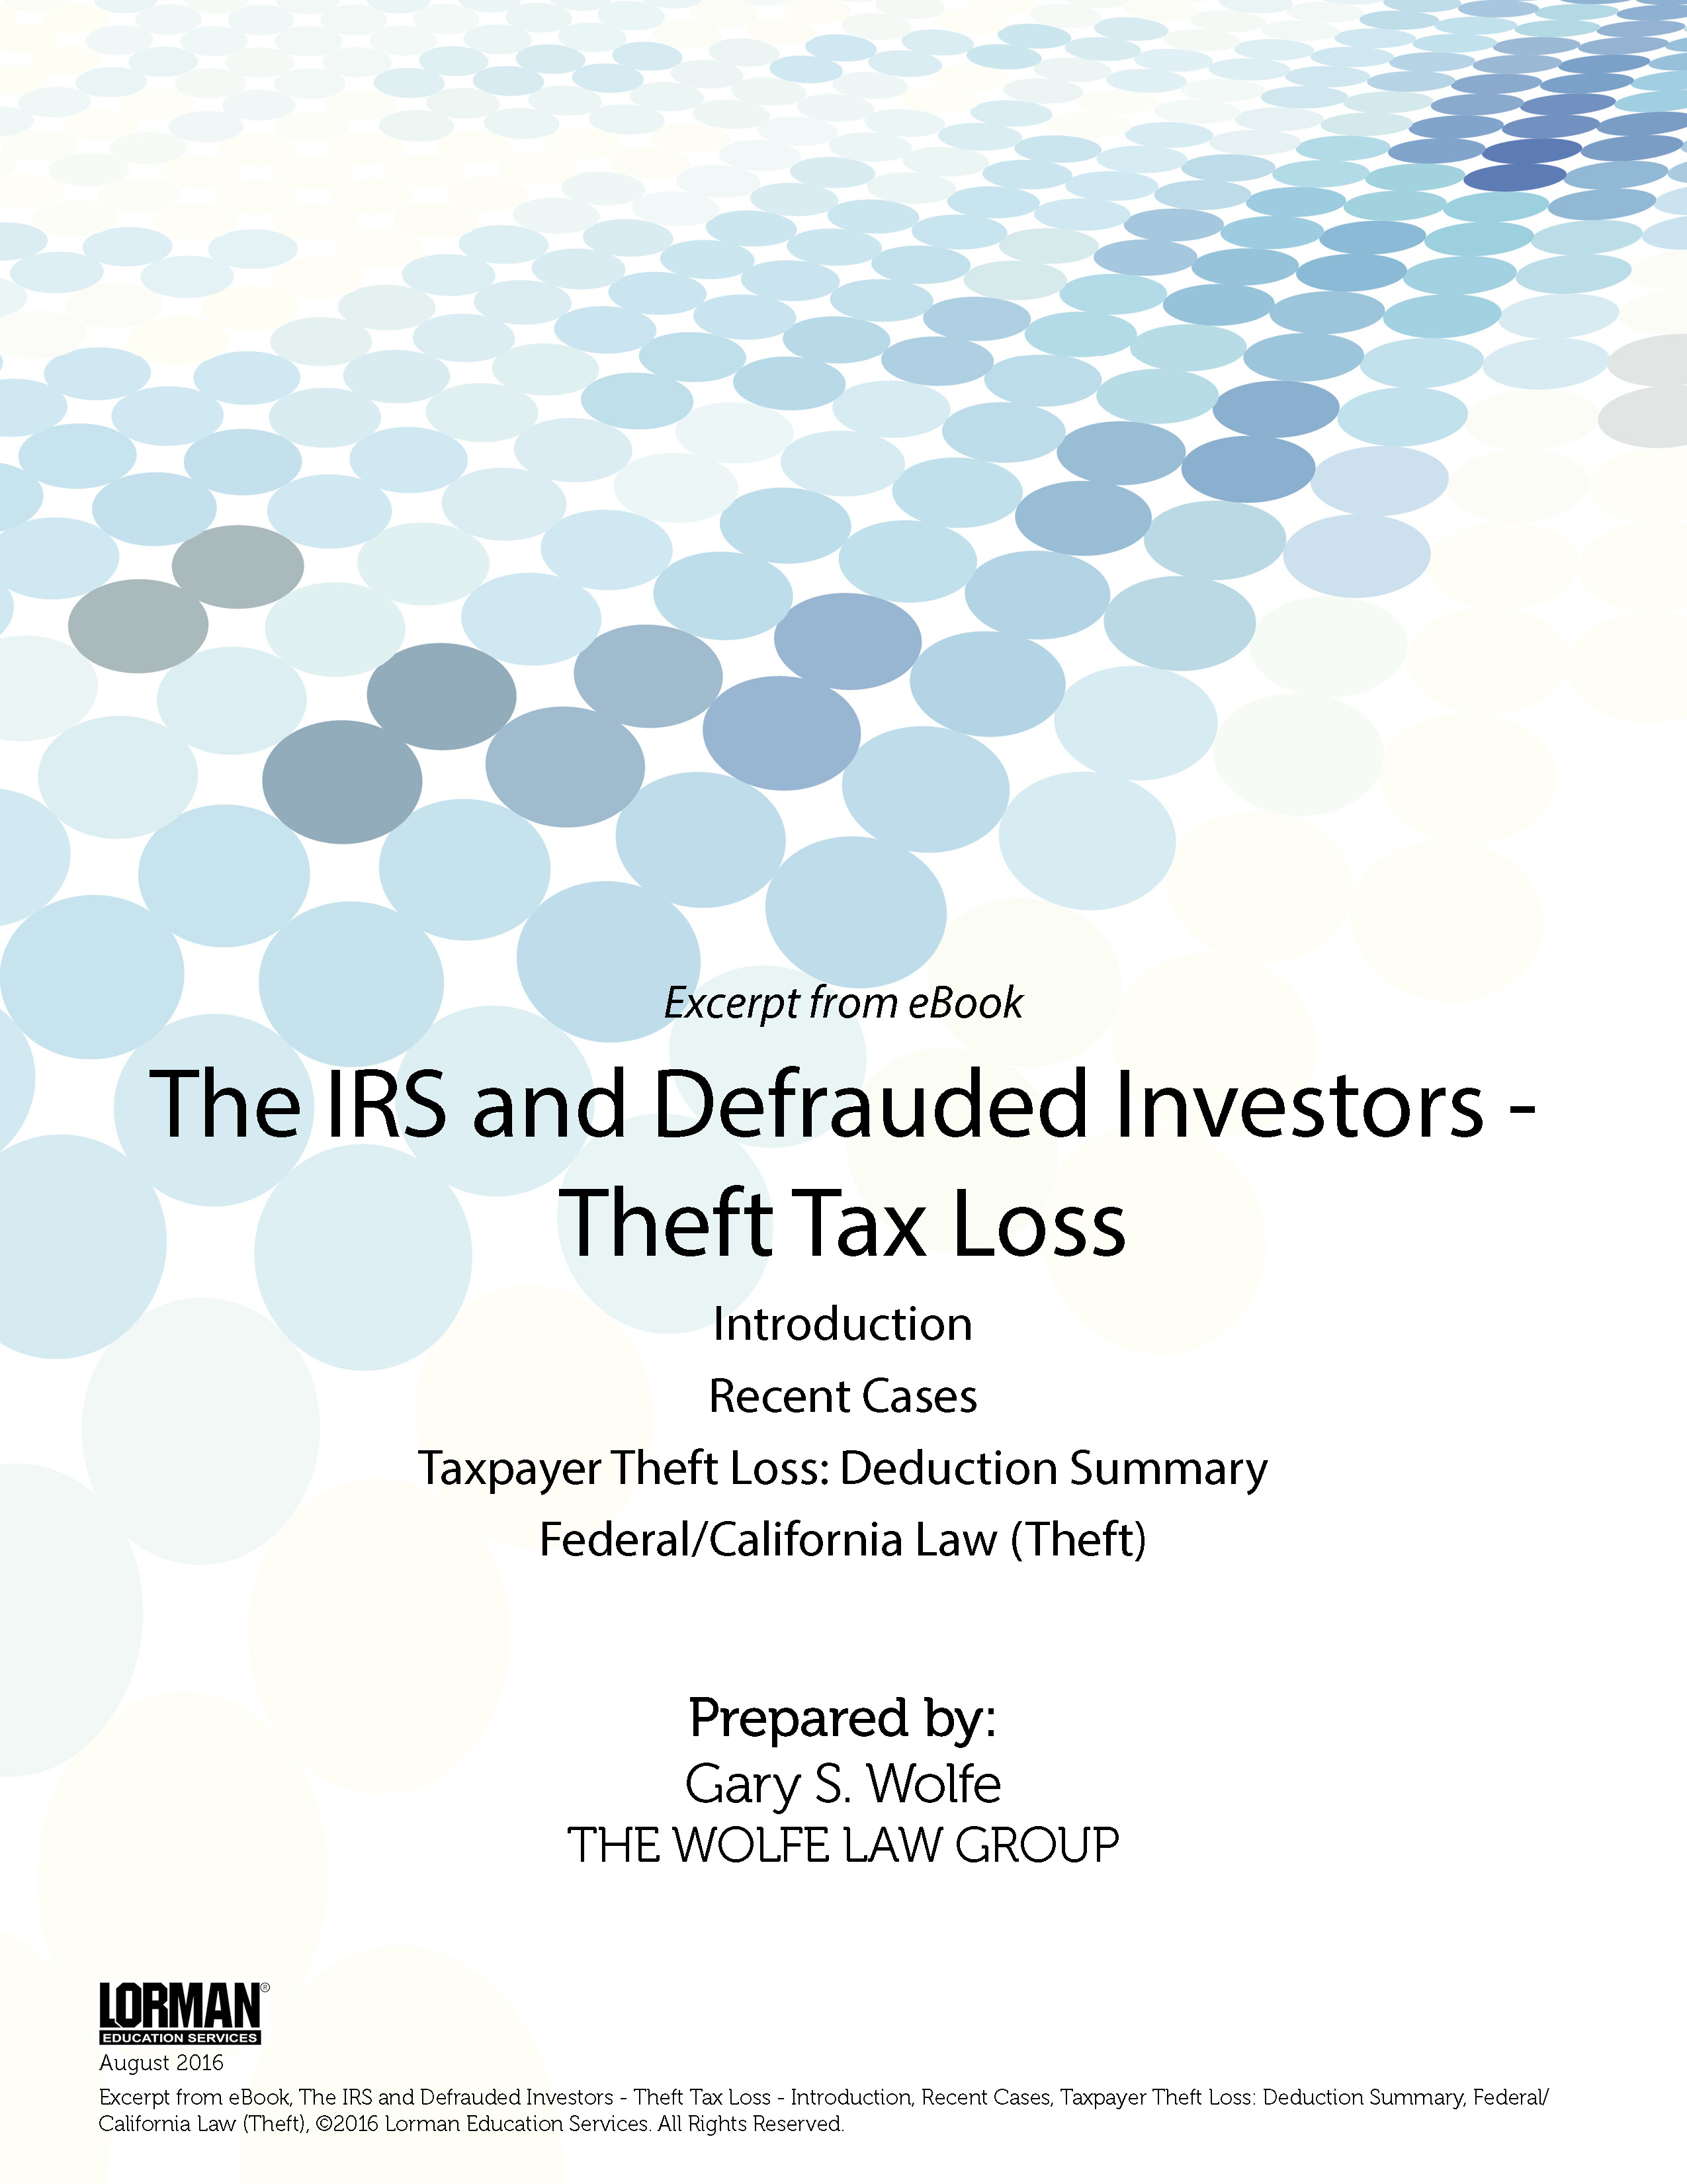 The IRS and Defrauded Investors: Theft Tax Loss - Recent Cases, Taxpayer Theft Loss, Federal/California Law (Theft)